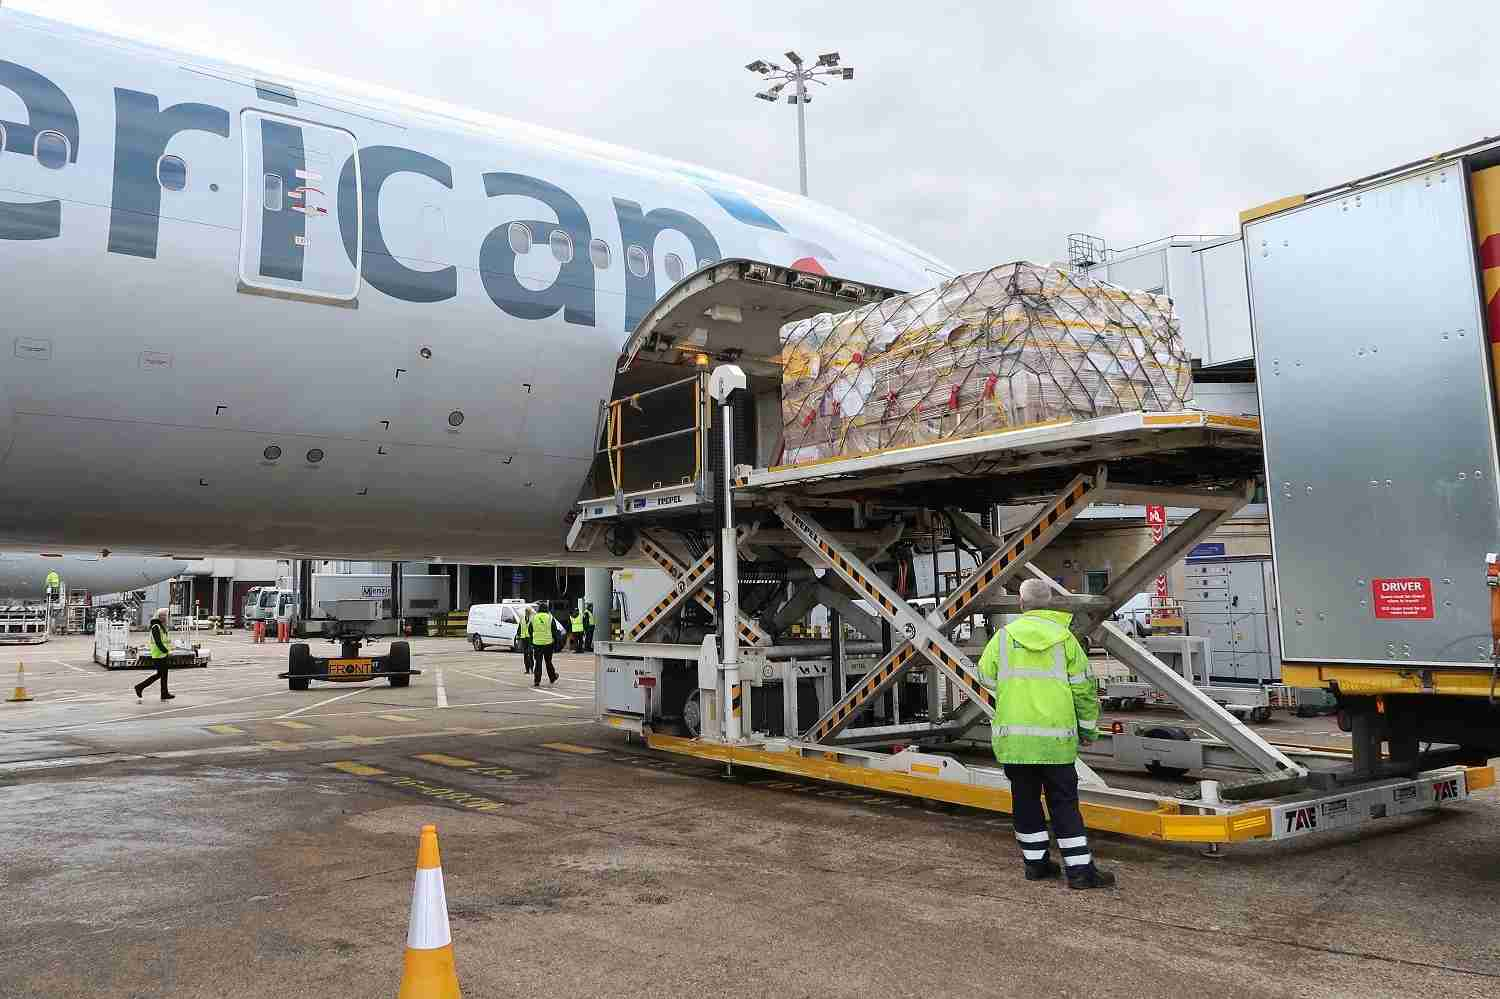 Loading cargo onto an American Airlines jet at London Heathrow (Photo by JT Genter/TPG)